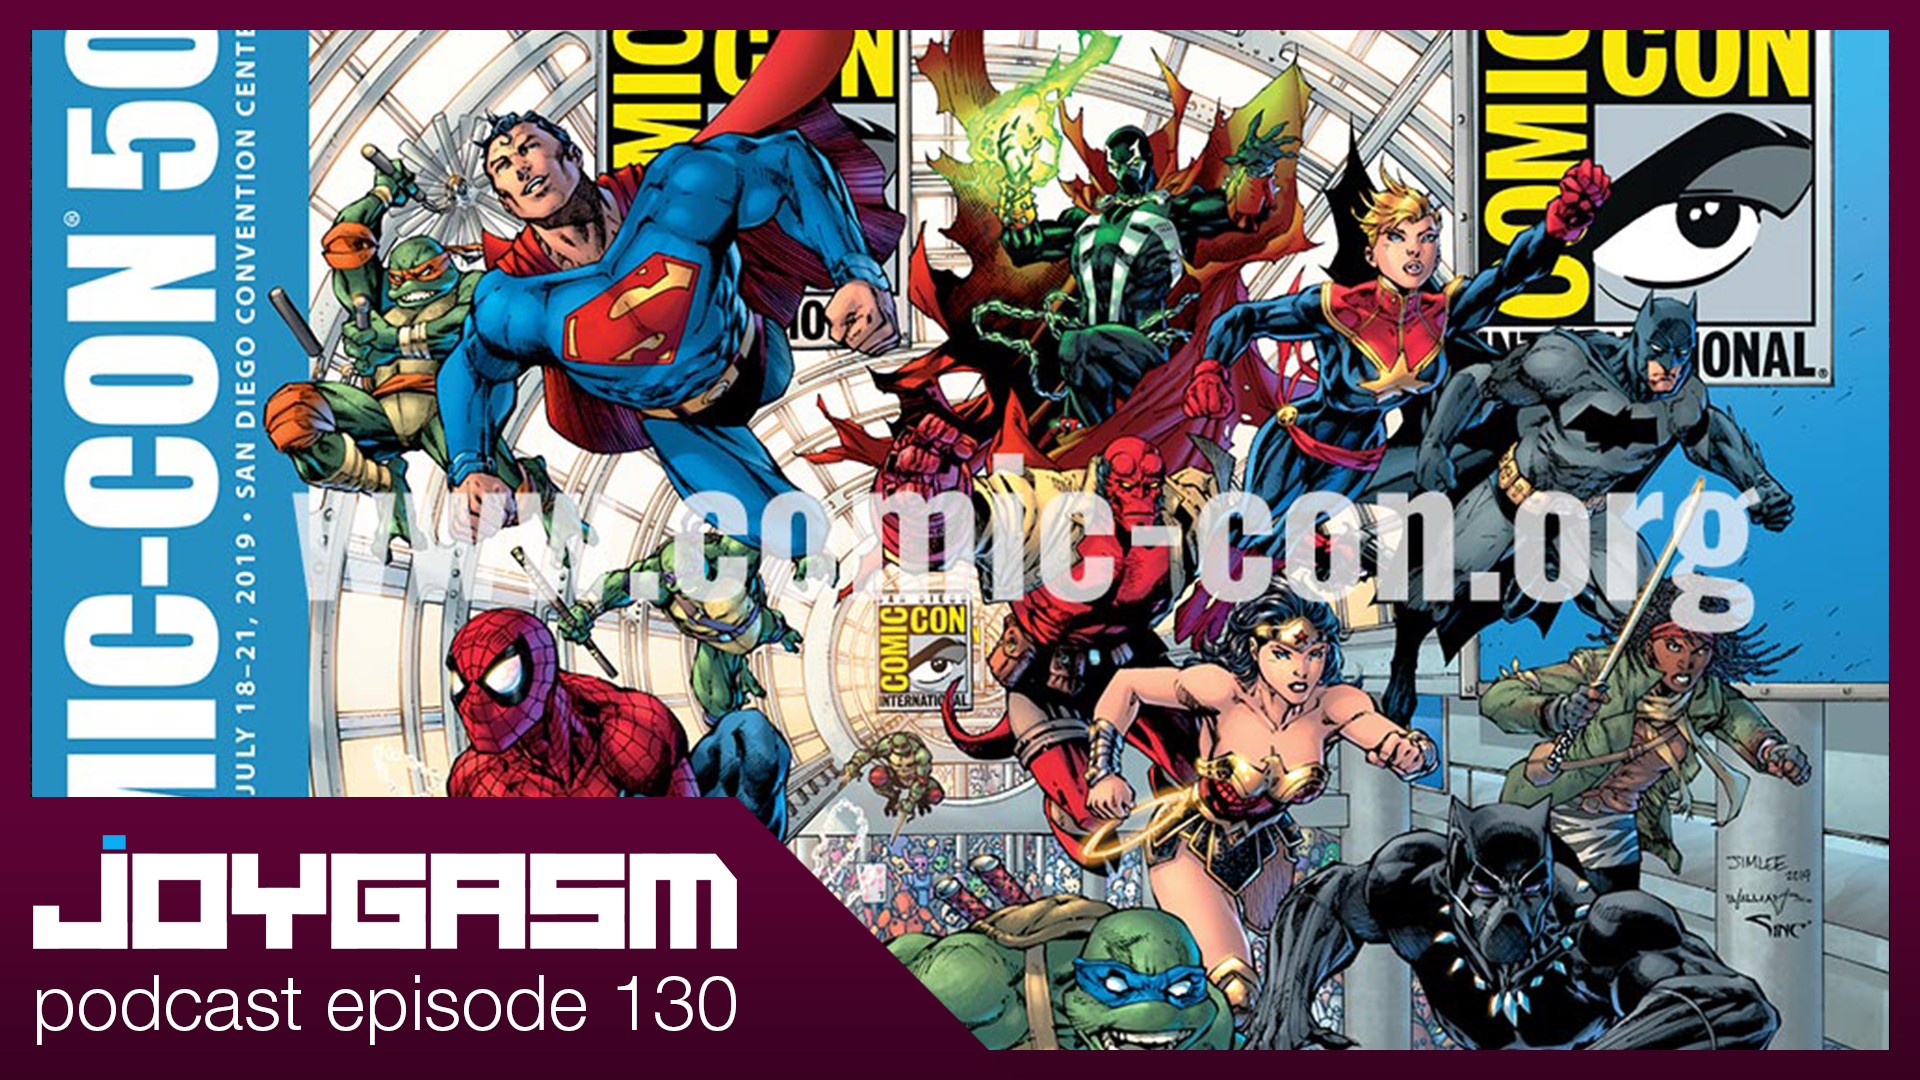 Ep. 130: San Diego Comic Con 2019 Expectations